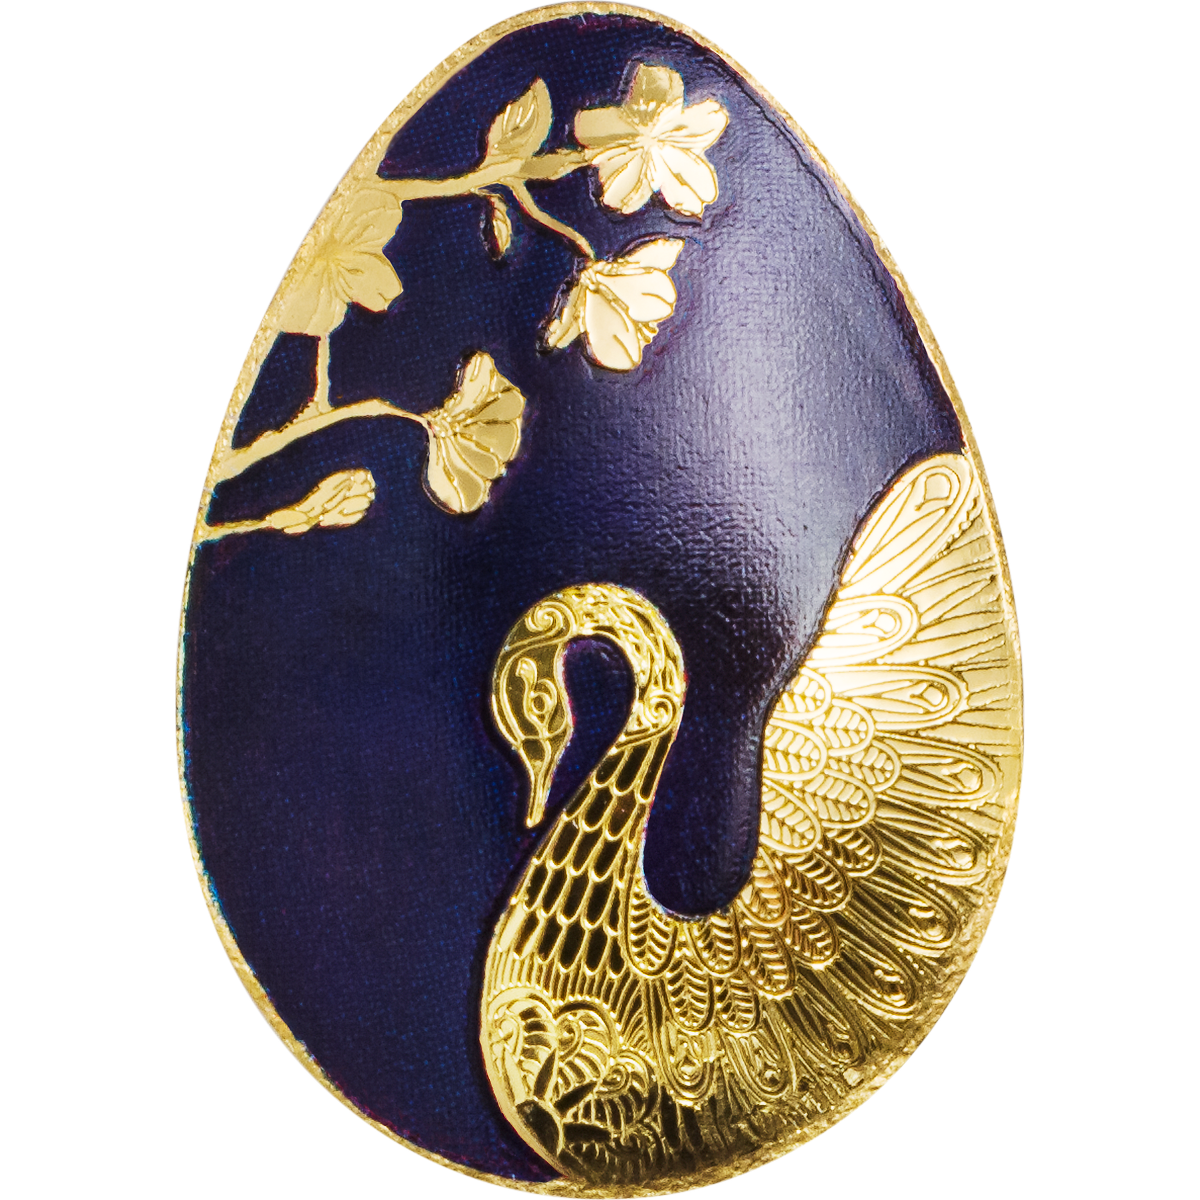 cit golden swan egg big gold minting bgm and smartminting technology